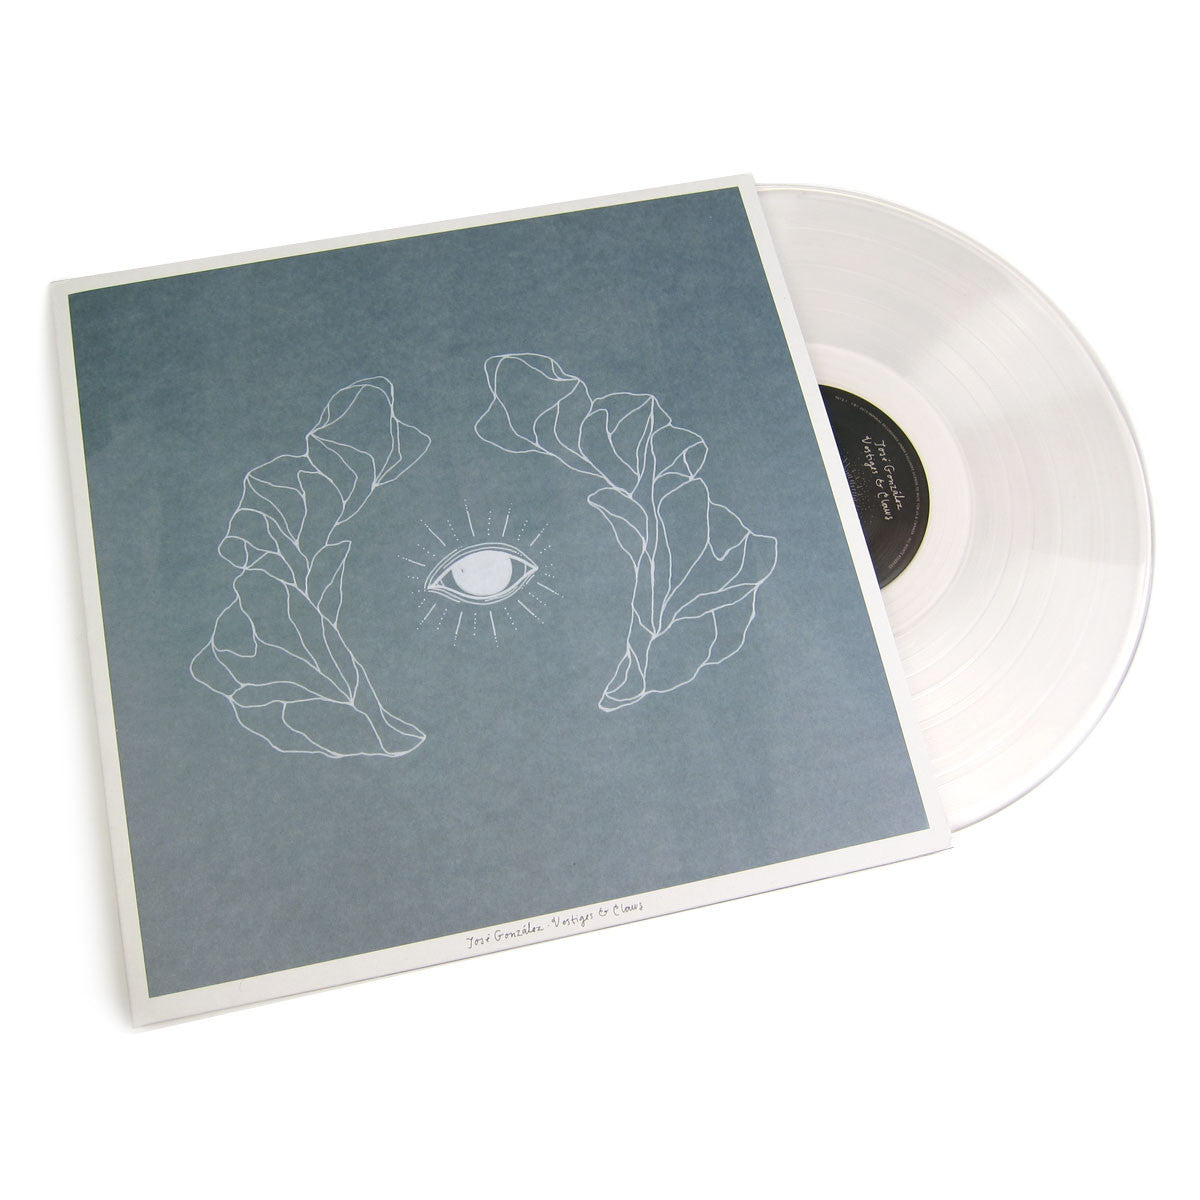 Jose Gonzalez: Vestiges & Claws (Clear Vinyl Indie Exclusive) Vinyl LP